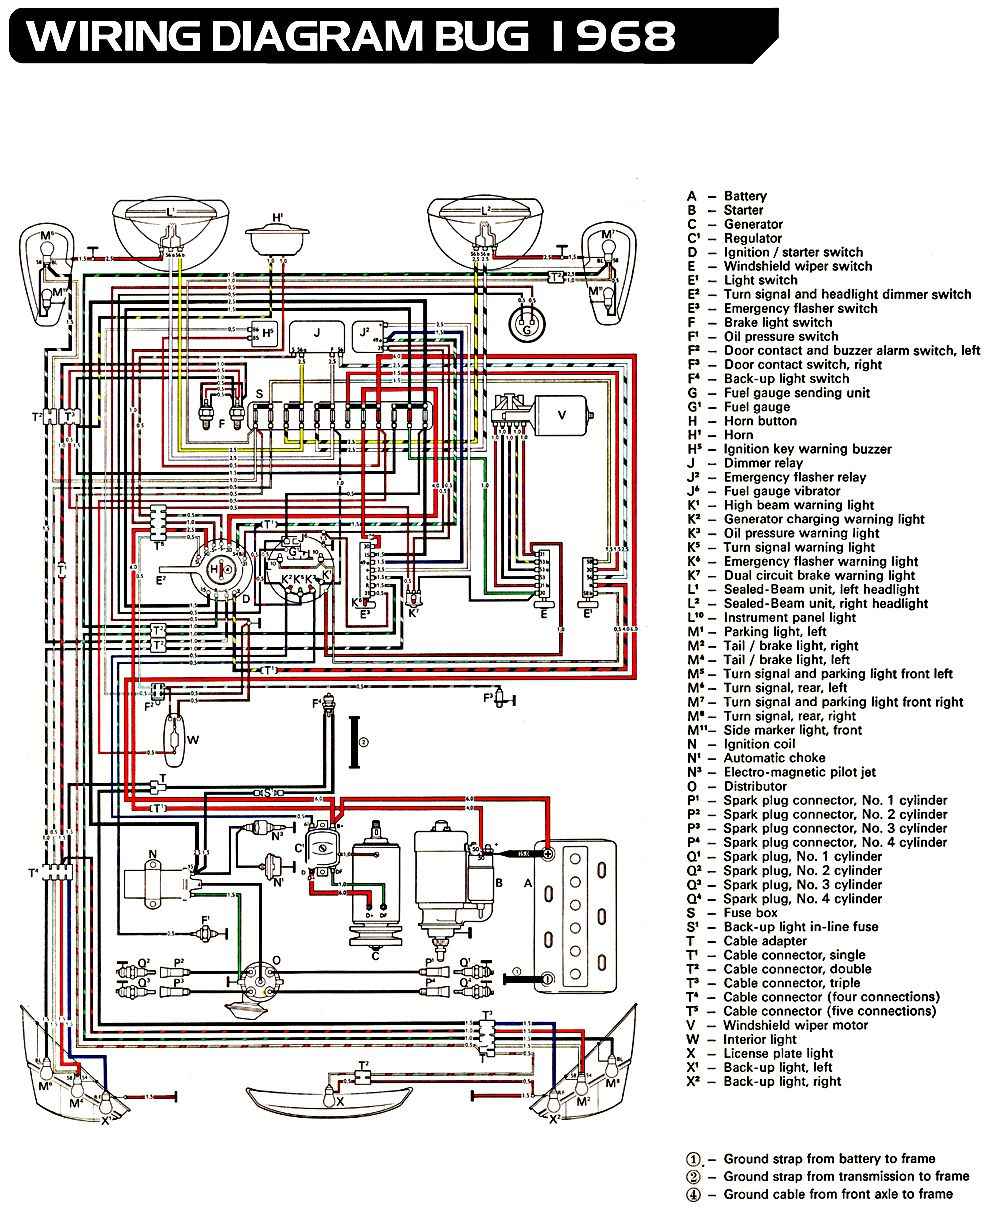 3a1908112d3826270ed5e3be362292bf vw bug ignition wiring diagram 73 vw wiring diagram free vw beetle wiring diagram at couponss.co